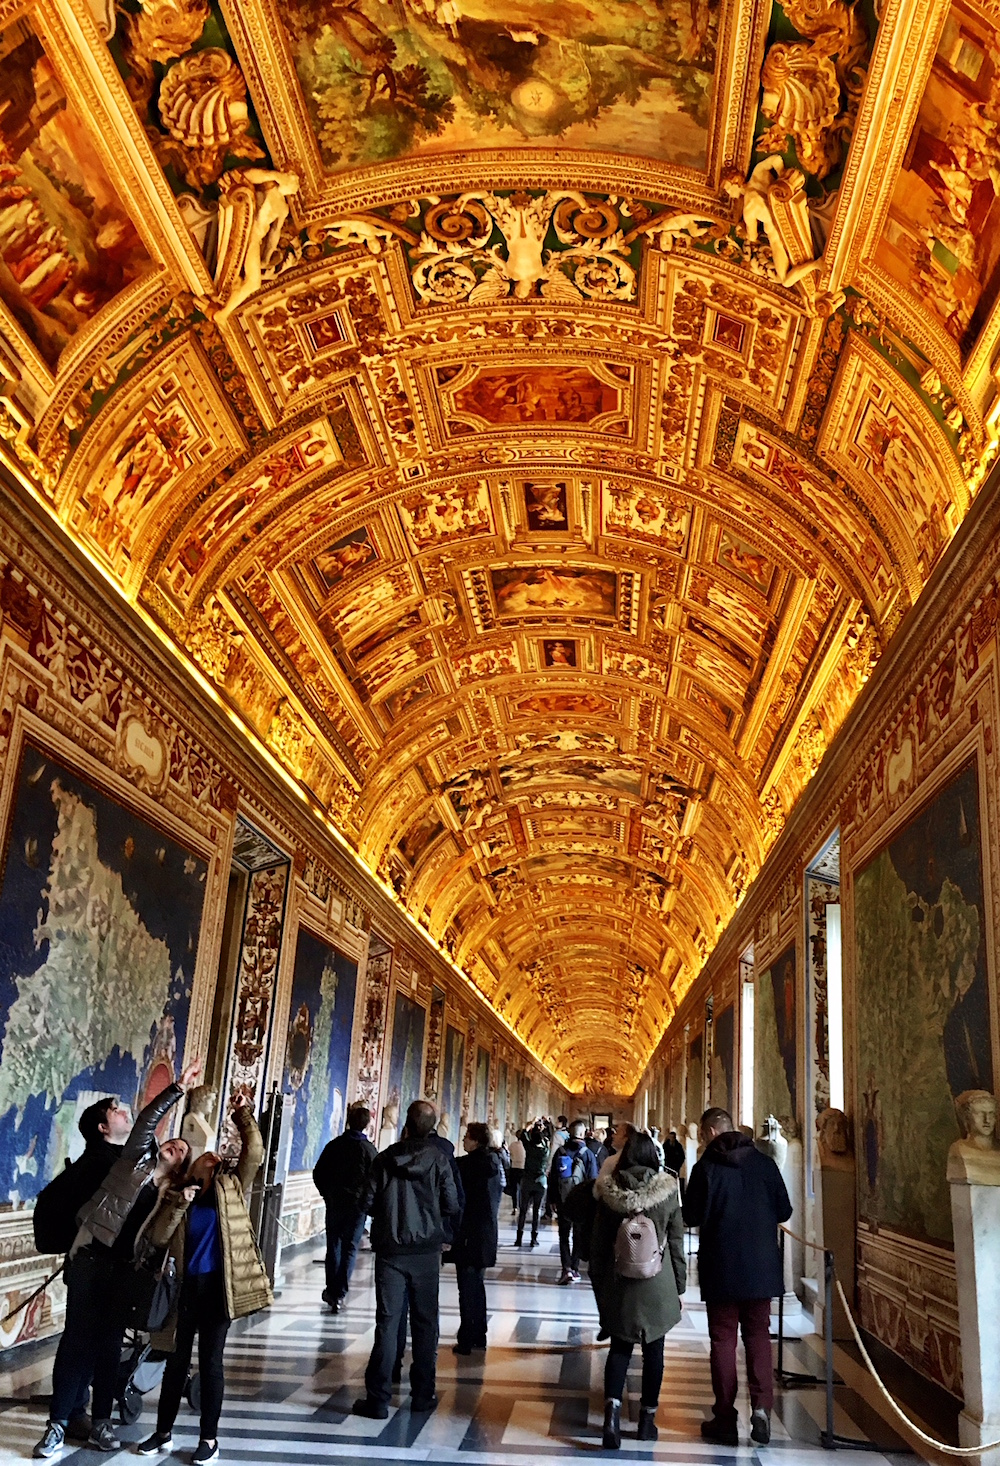 Vatican-Museum-Gallery-of-Maps-Ceiling